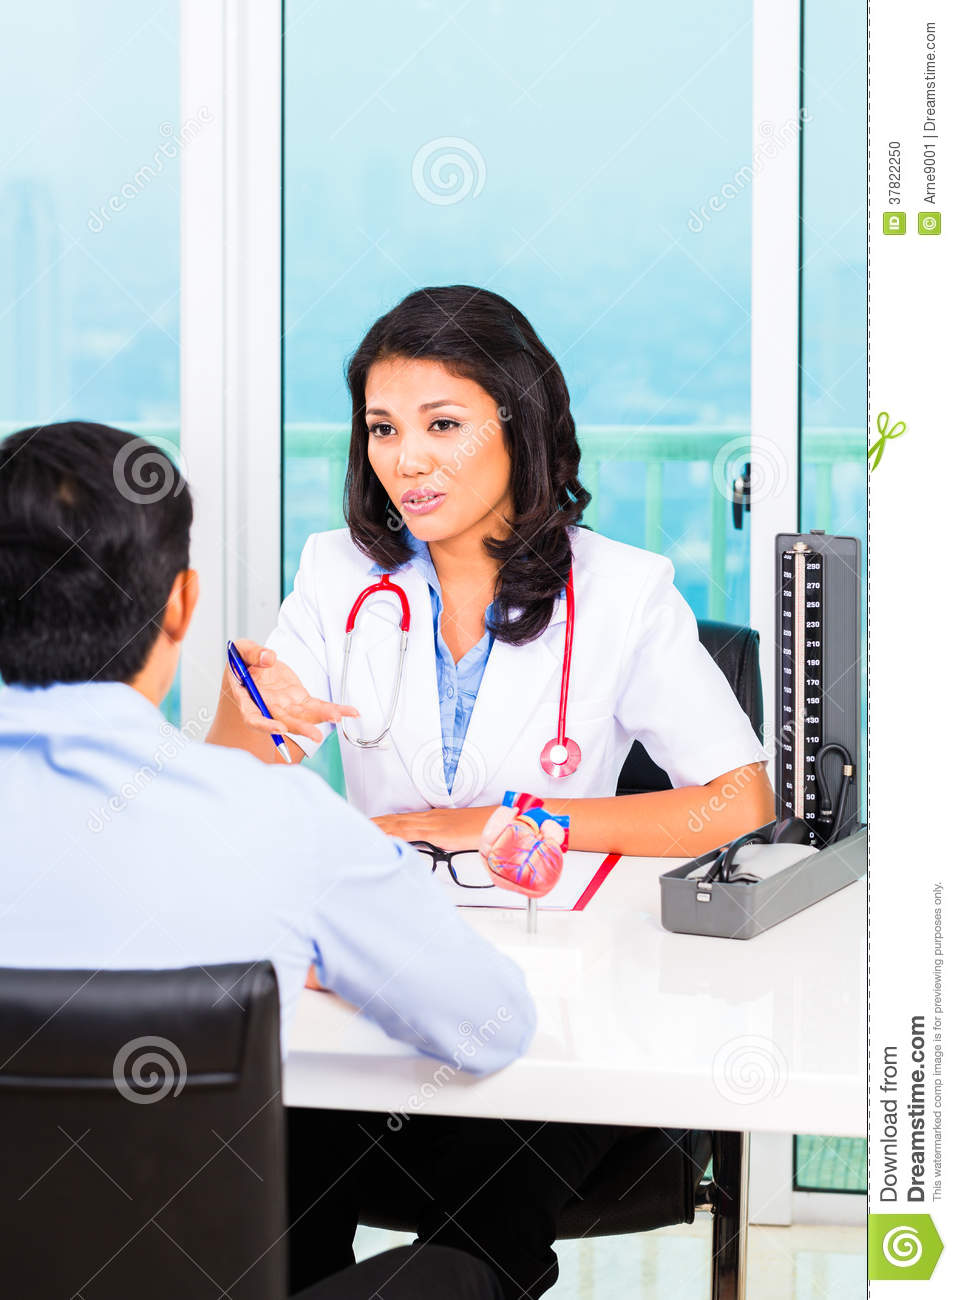 dating advice for female doctors As doctors are intelligent and often passionate about their work, dating a doctor  can be a  if someone is in a bad mood, you may be inclined to give advice.